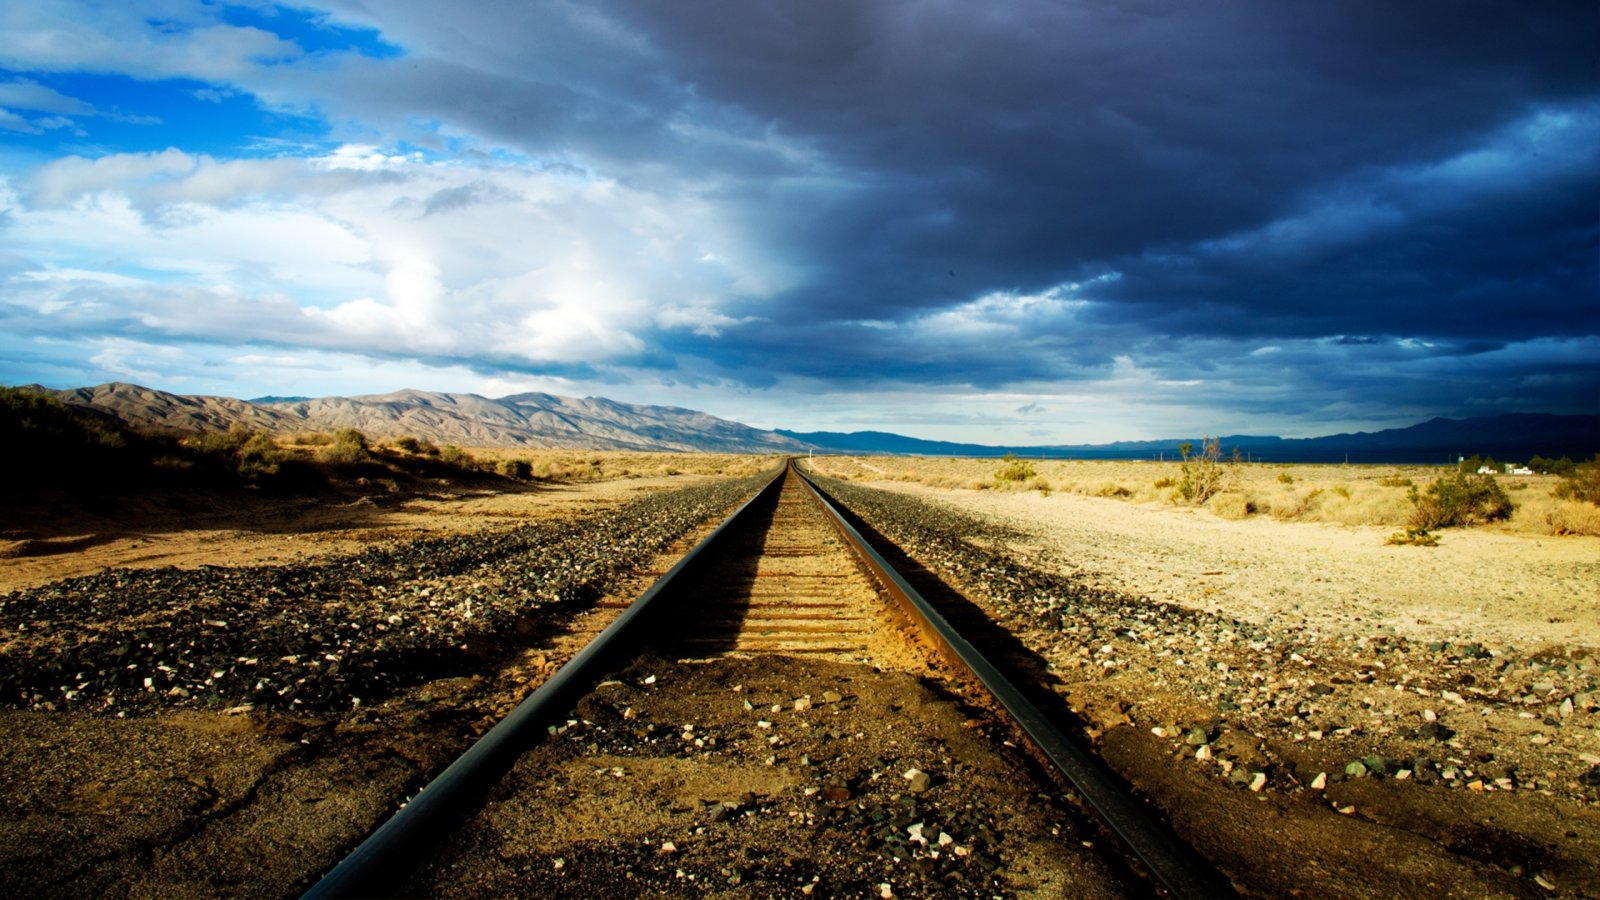 Train-Track-Cool-Backgrounds-Wallpapers.jpg